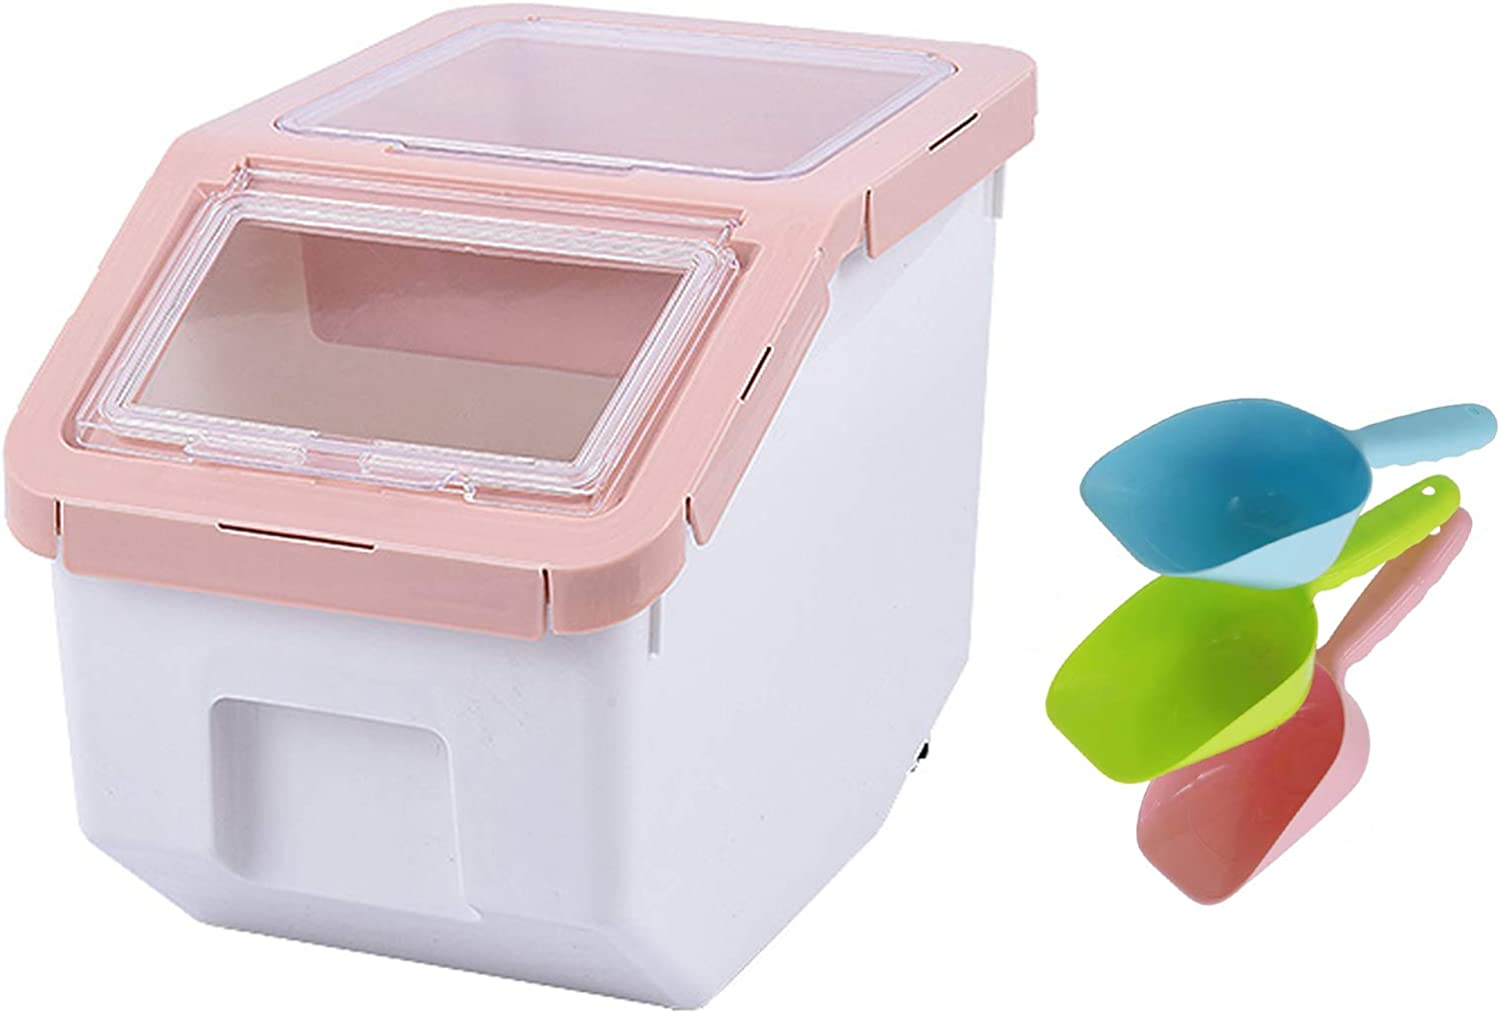 MXCELL Pet Grain Storage Barrels Sealed Bucket for Cat Dog Food Storage Boxes Moisture-Proof Pet Food Containers Interlayer Storage Feeder with Food Scoop and Measuring Cup, Pink(Small)